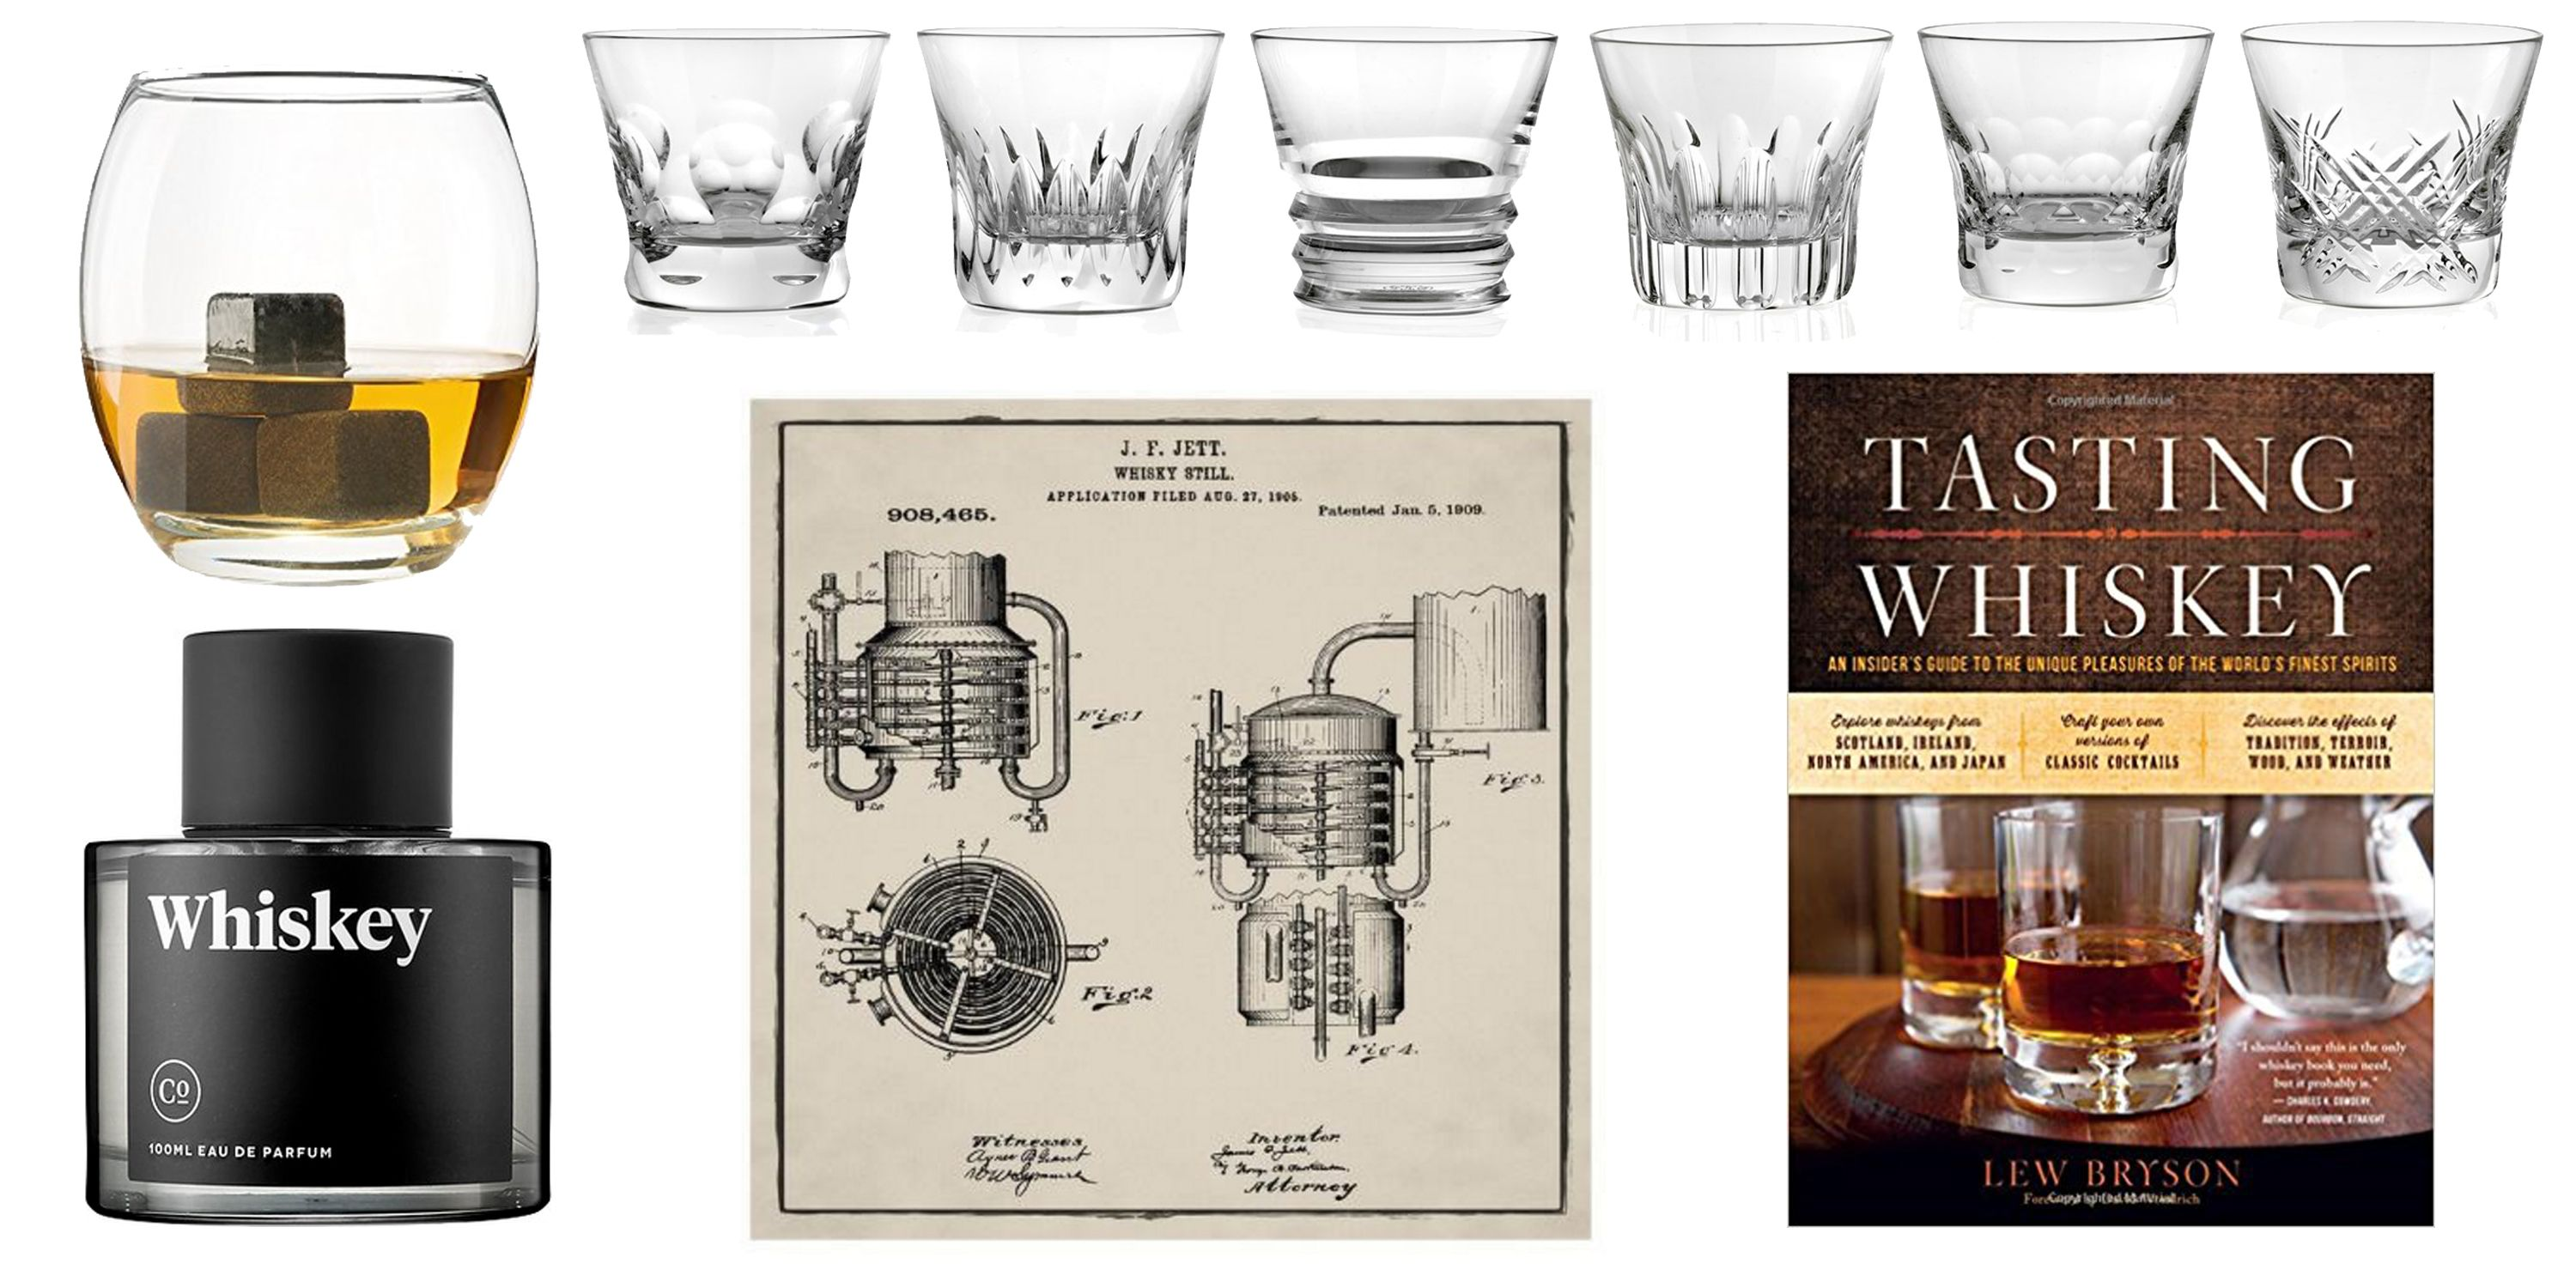 The Best Gifts for Whiskey Lovers - Gifts for Whiskey Drinkers